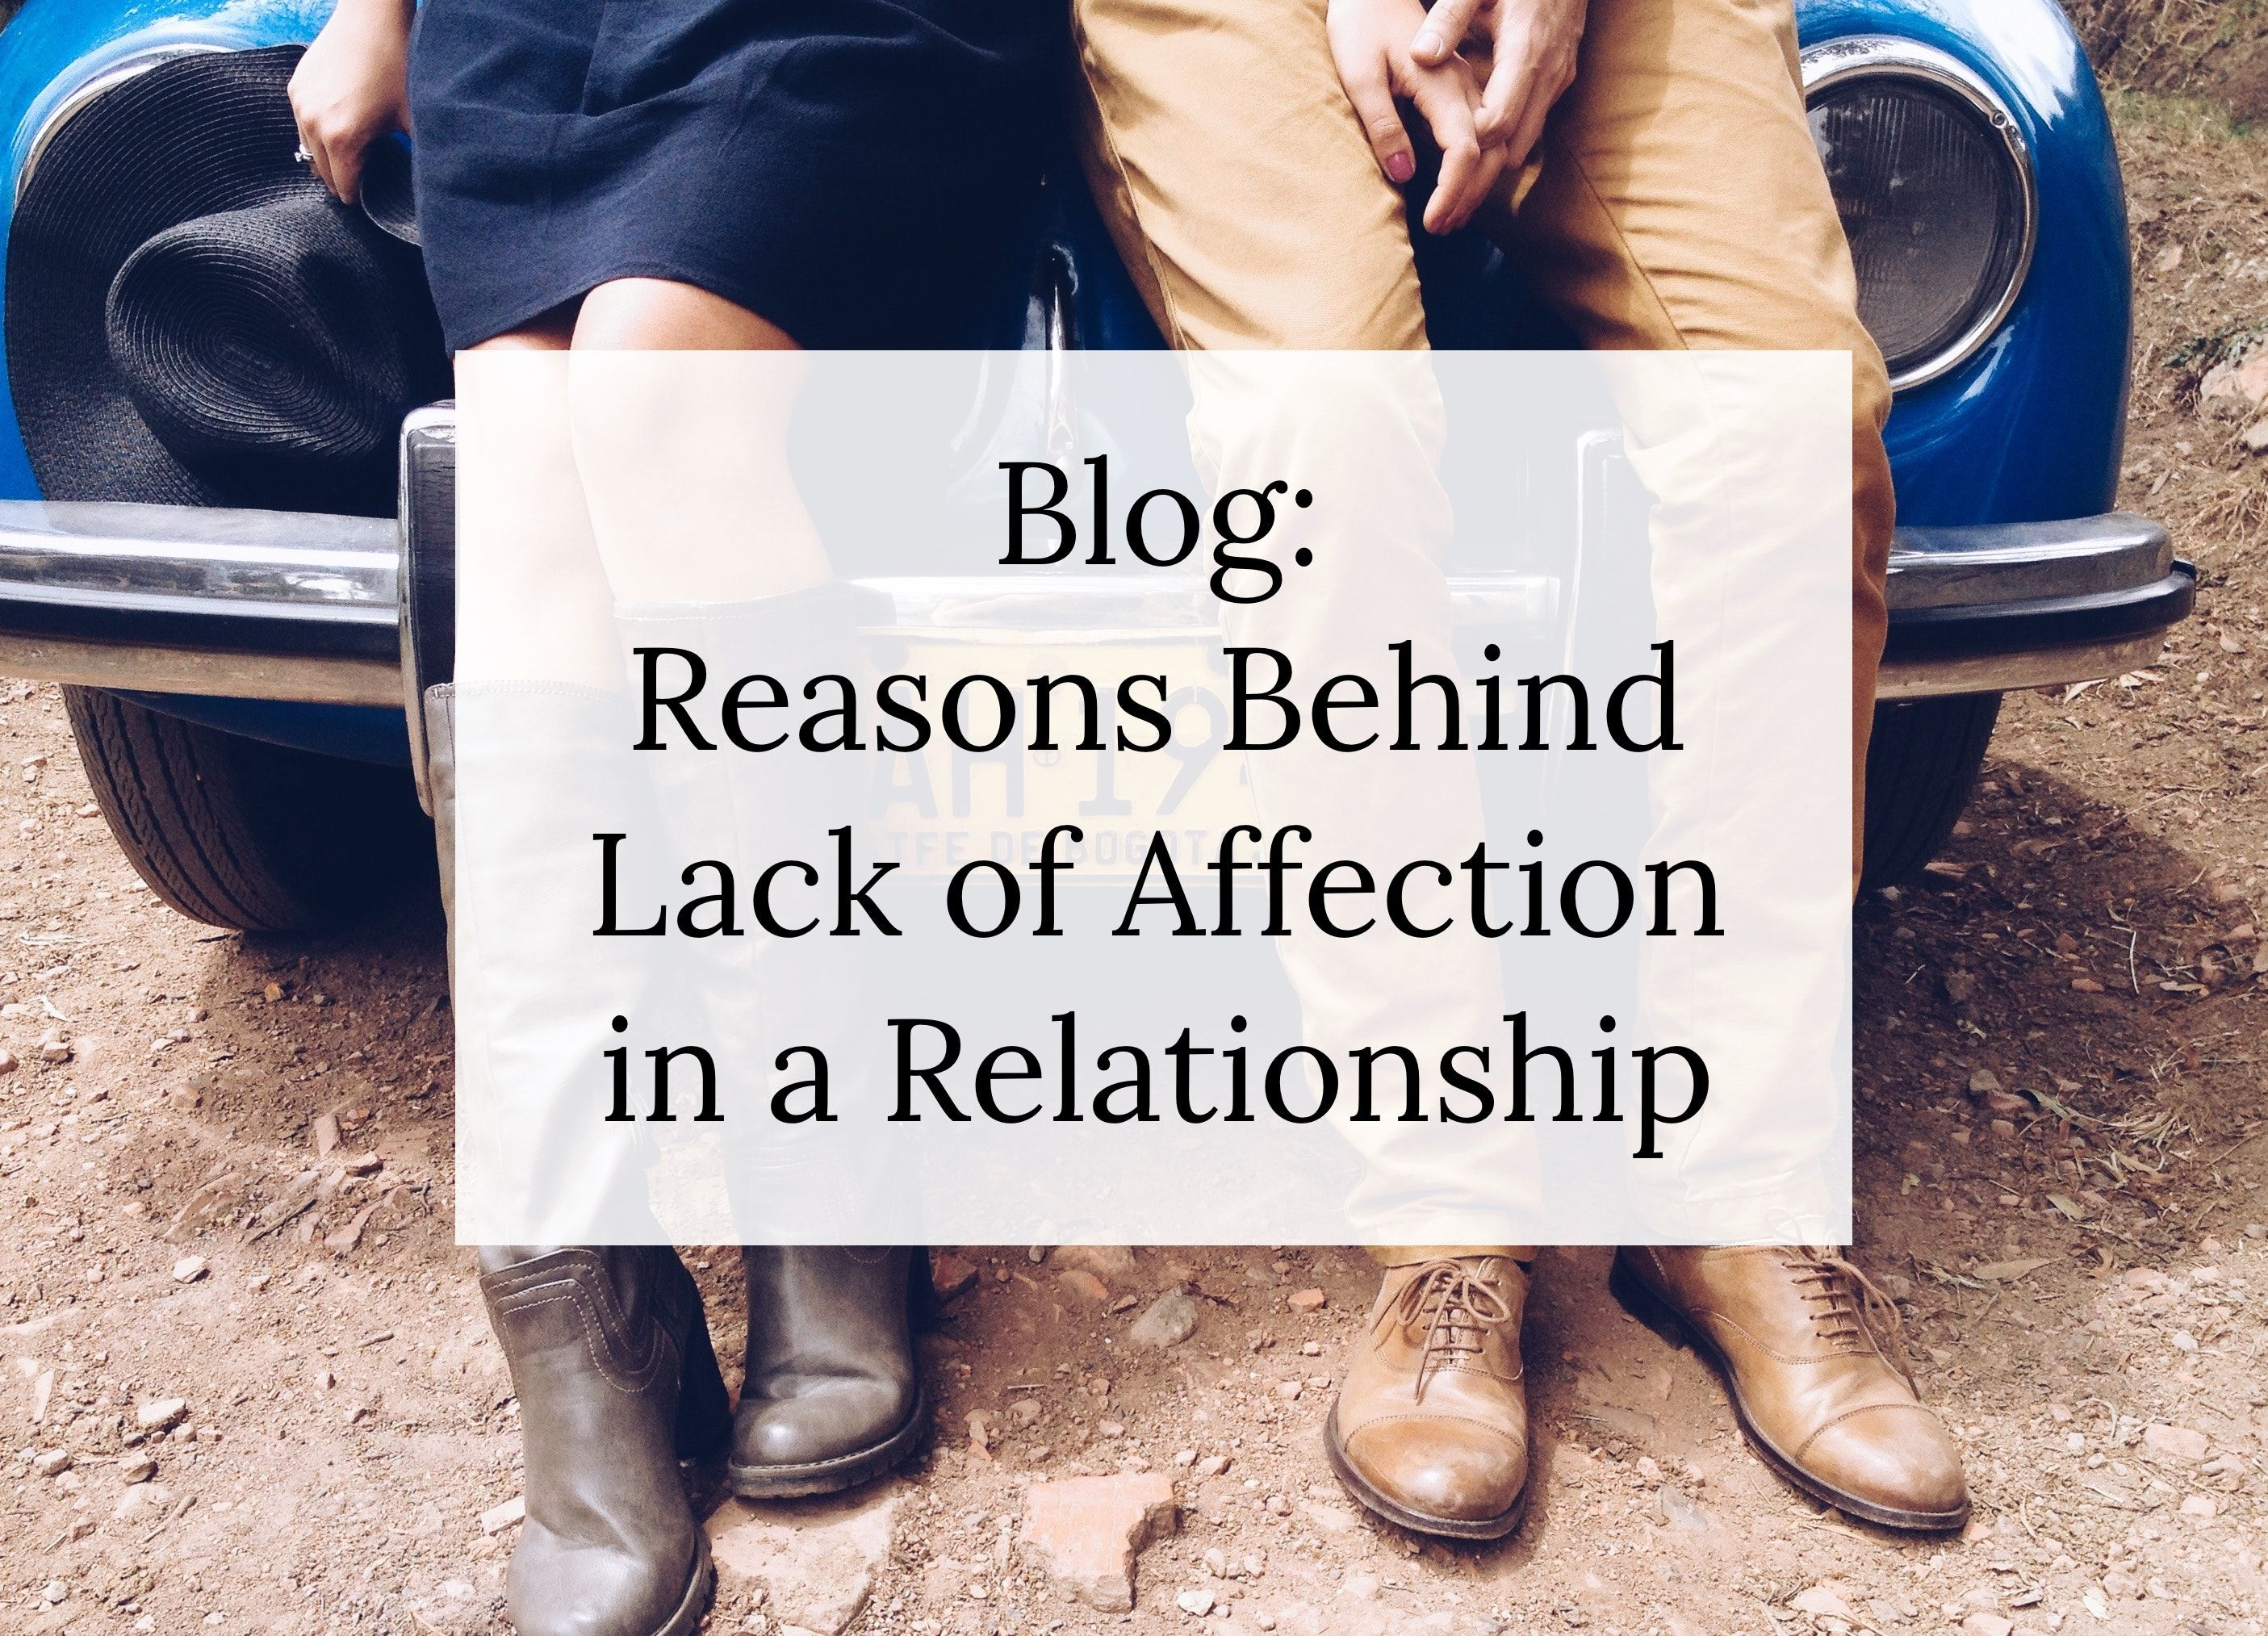 Reasons Behind Lack of Affection in a Relationship | Physical intimacy, Post traumatic stress